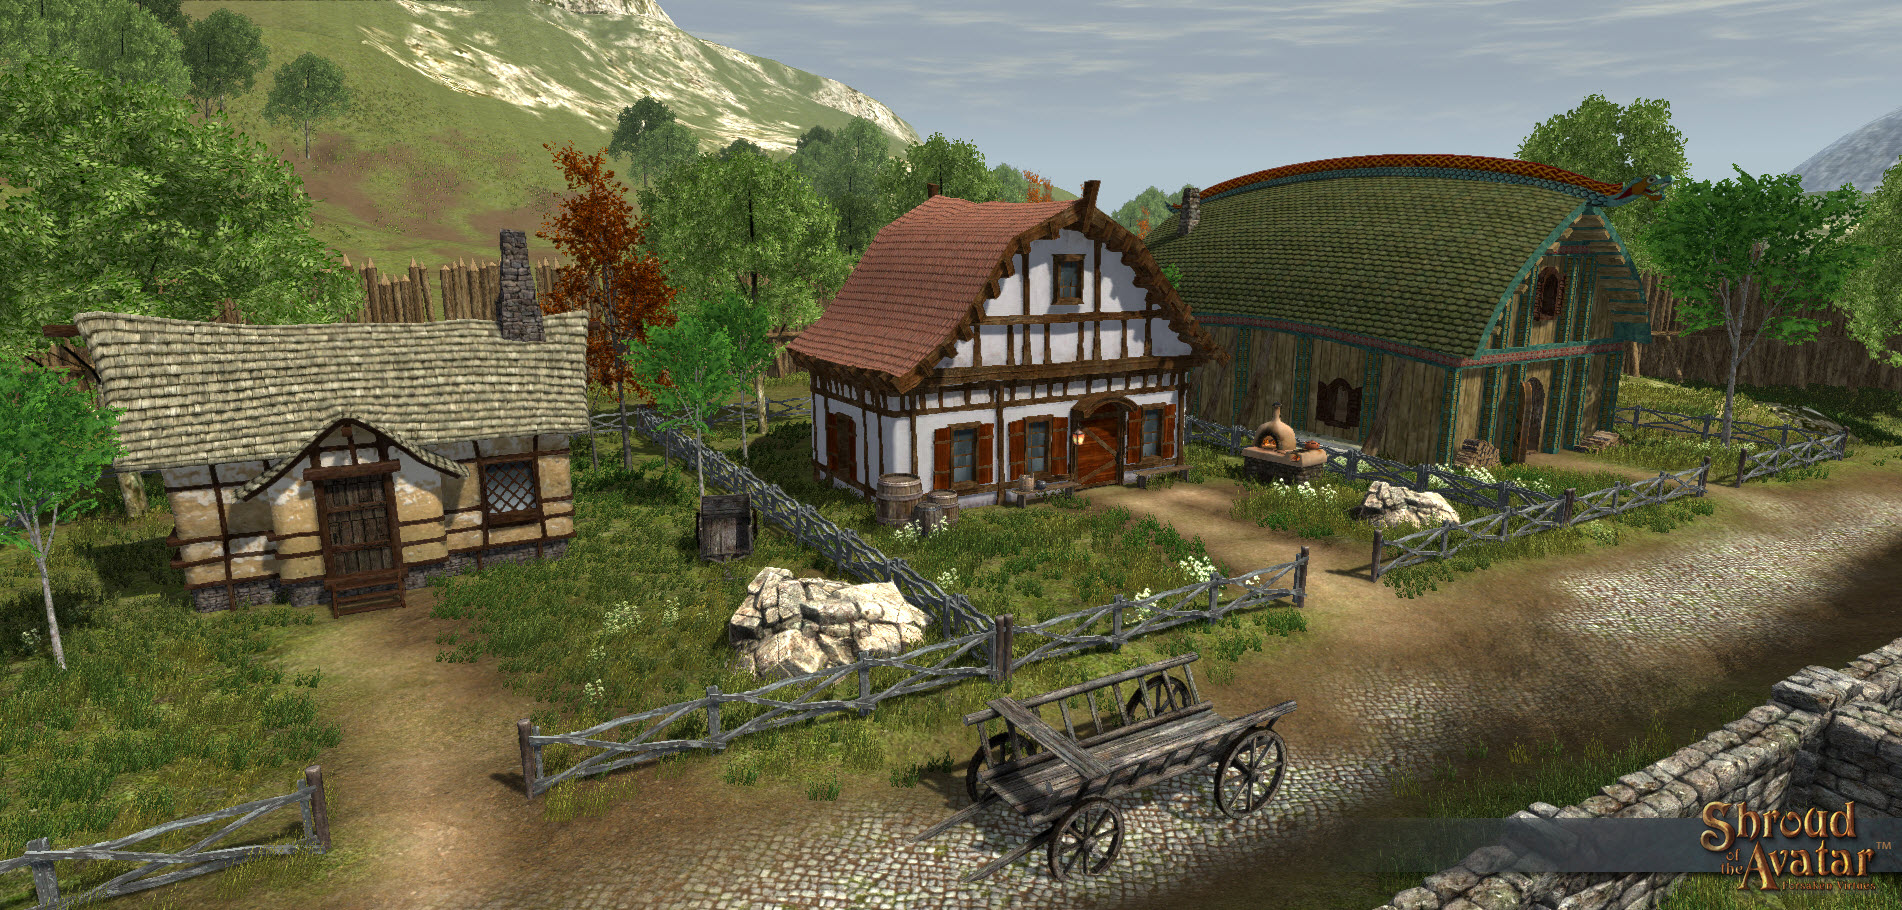 Update Of The Avatar 42 10 04 13 Founder Lord Home Benefactor Edelmann Home Avatar Outfits